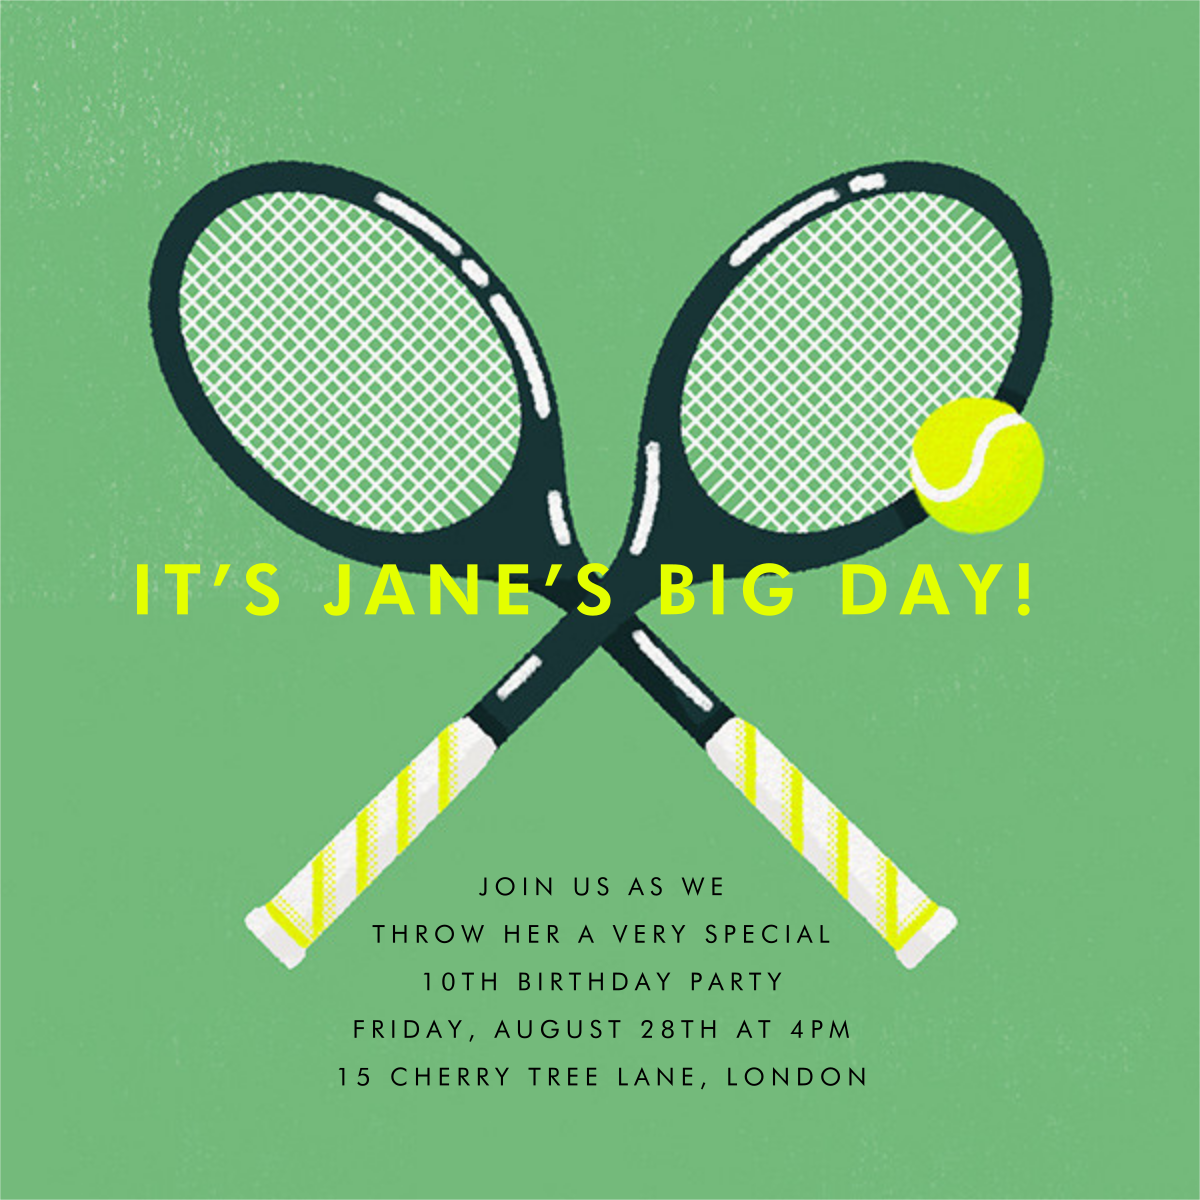 Mixed Doubles - Tennis - Paperless Post - Kids' birthday